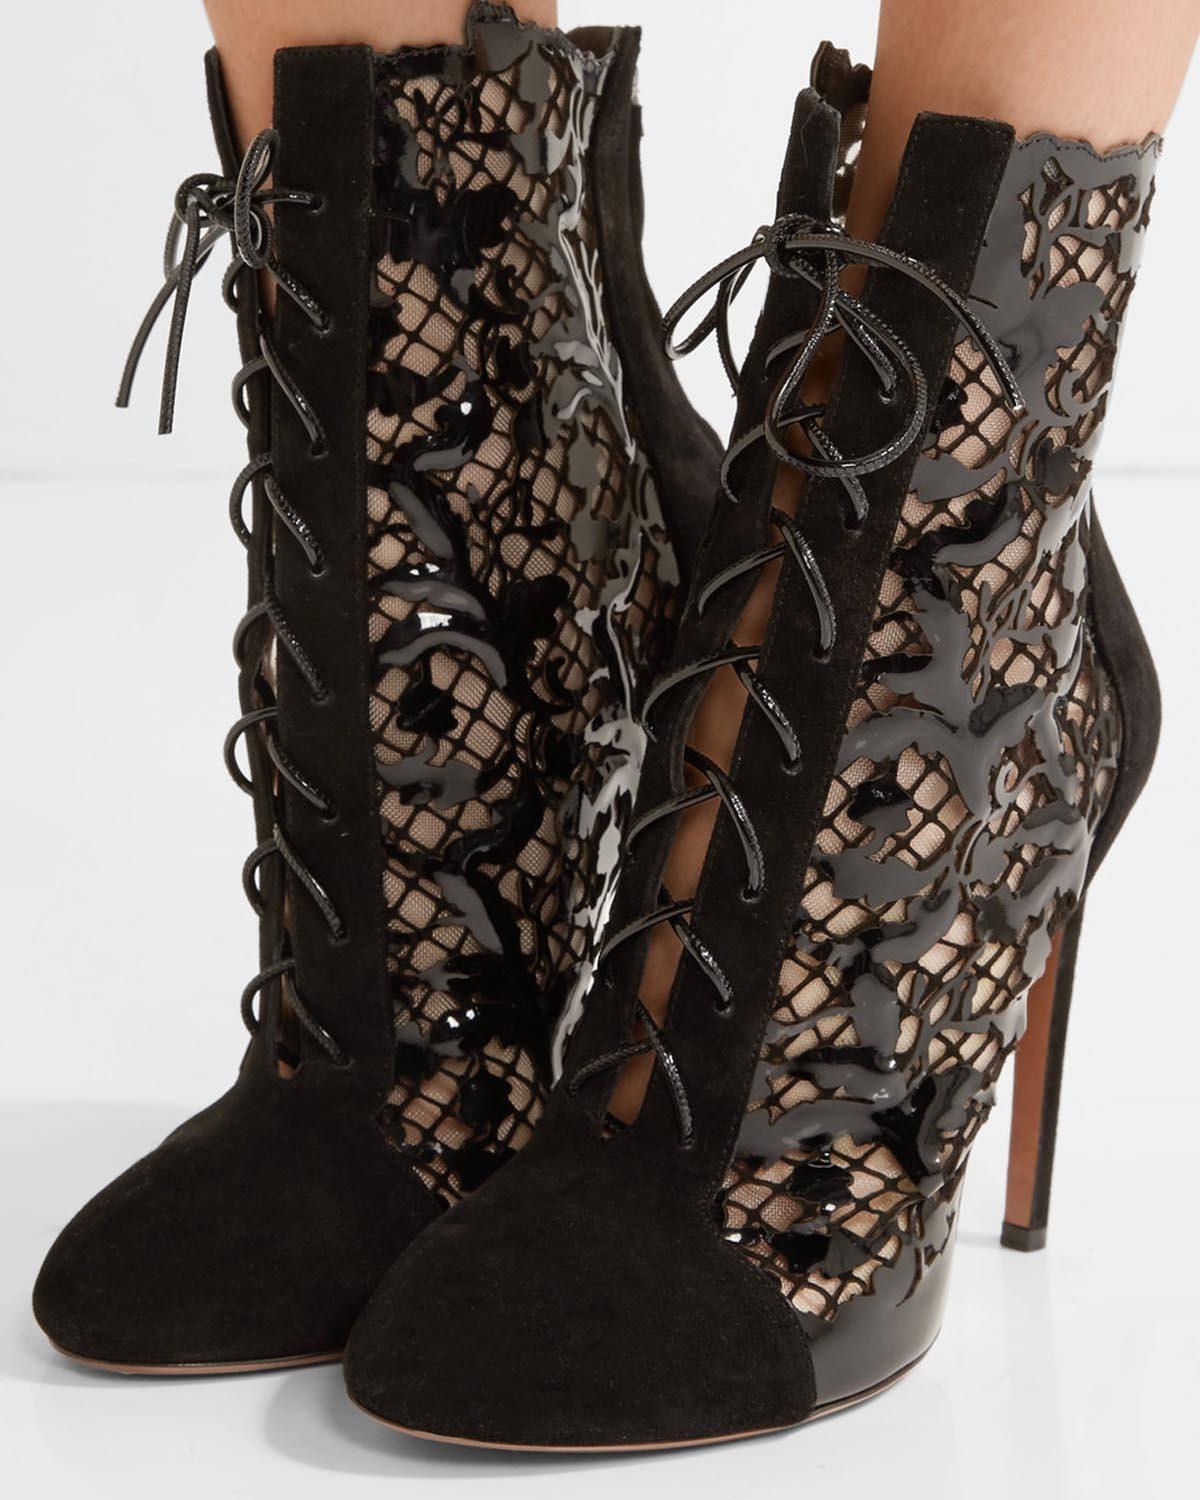 Ala 207 A Laser Cut Suede And Patent Leather Ankle Boots